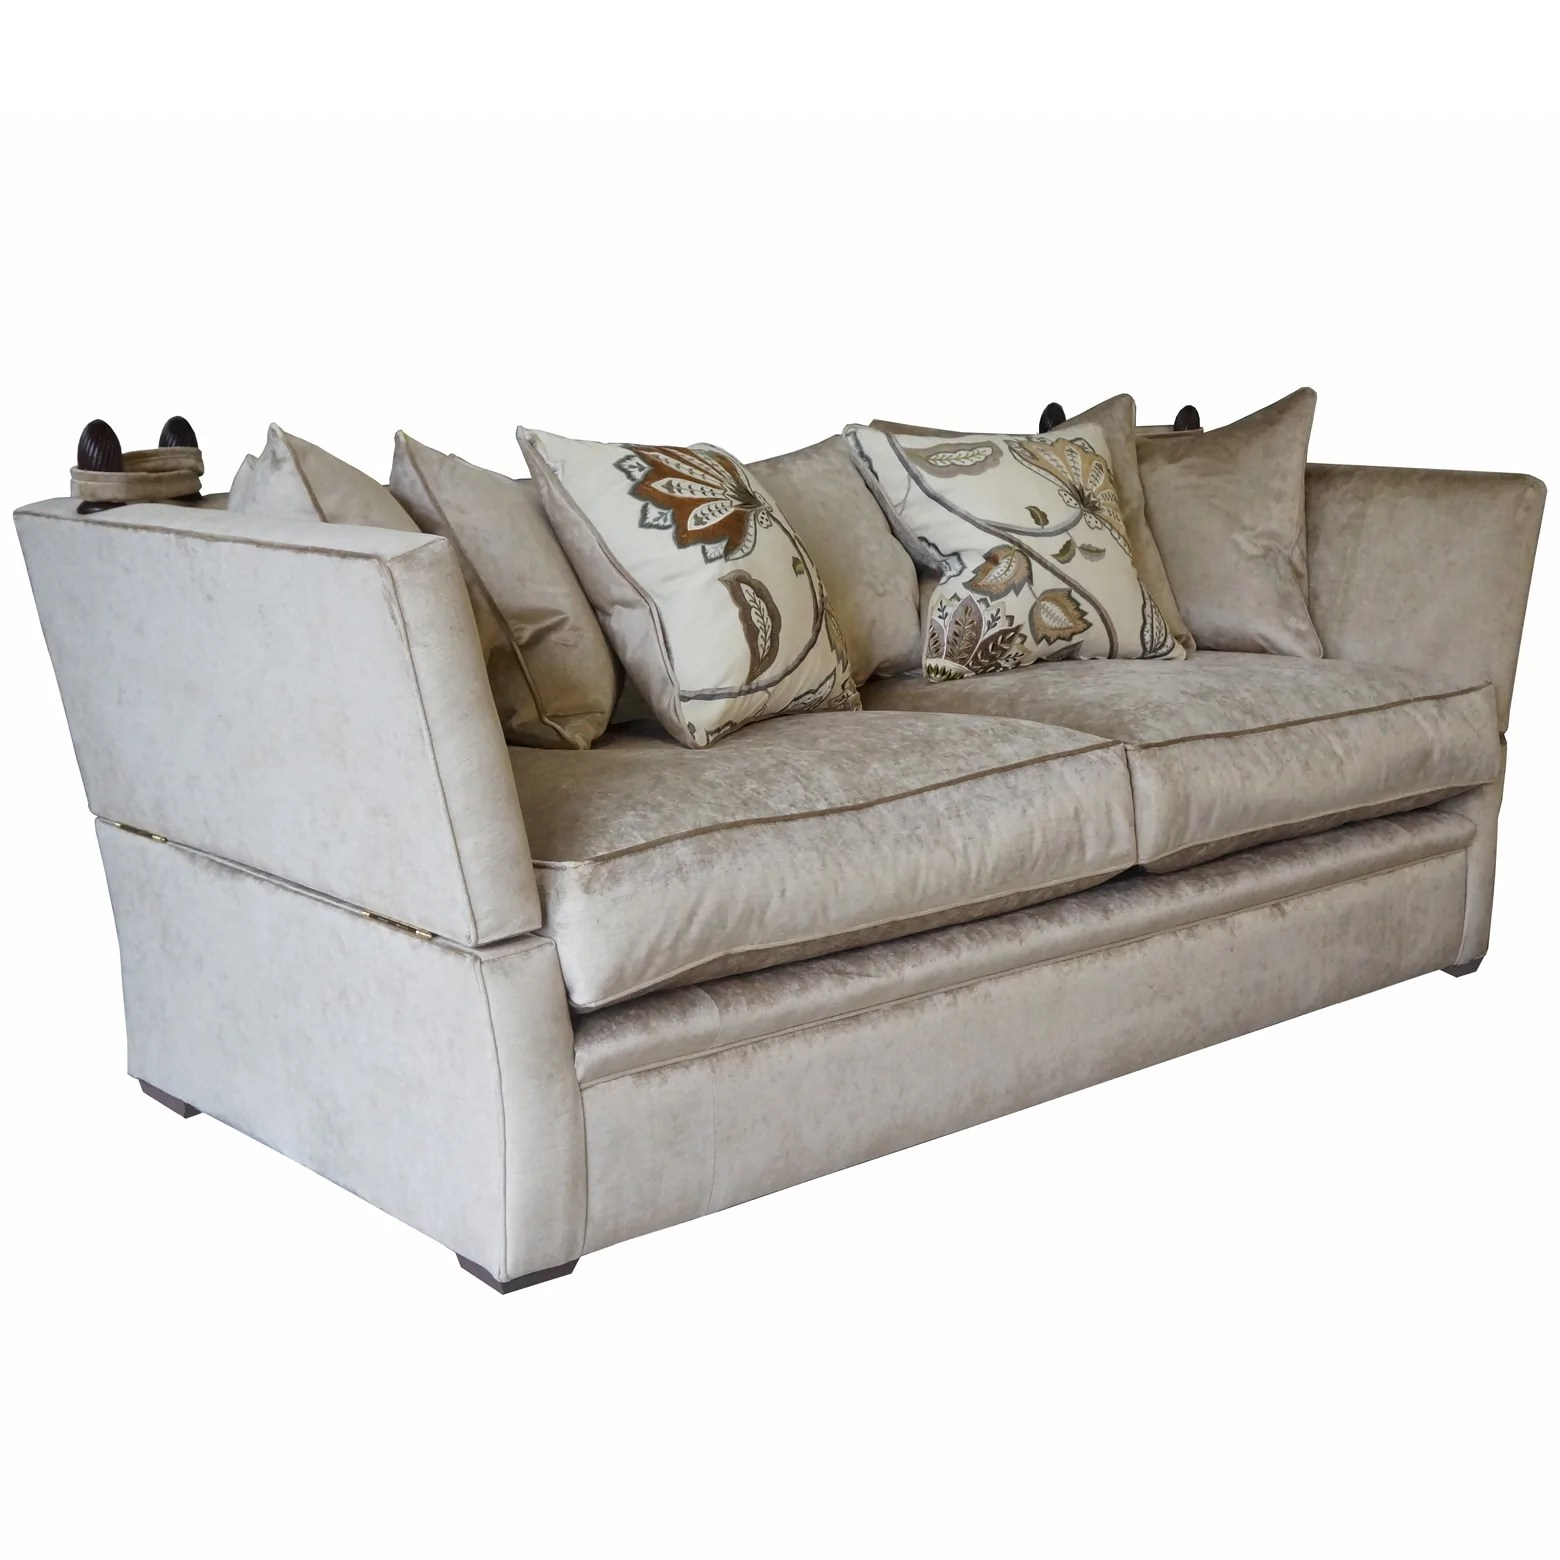 Greenwich Sofa And Chairs In Cascada Velvet Half Price To Order Settle Home